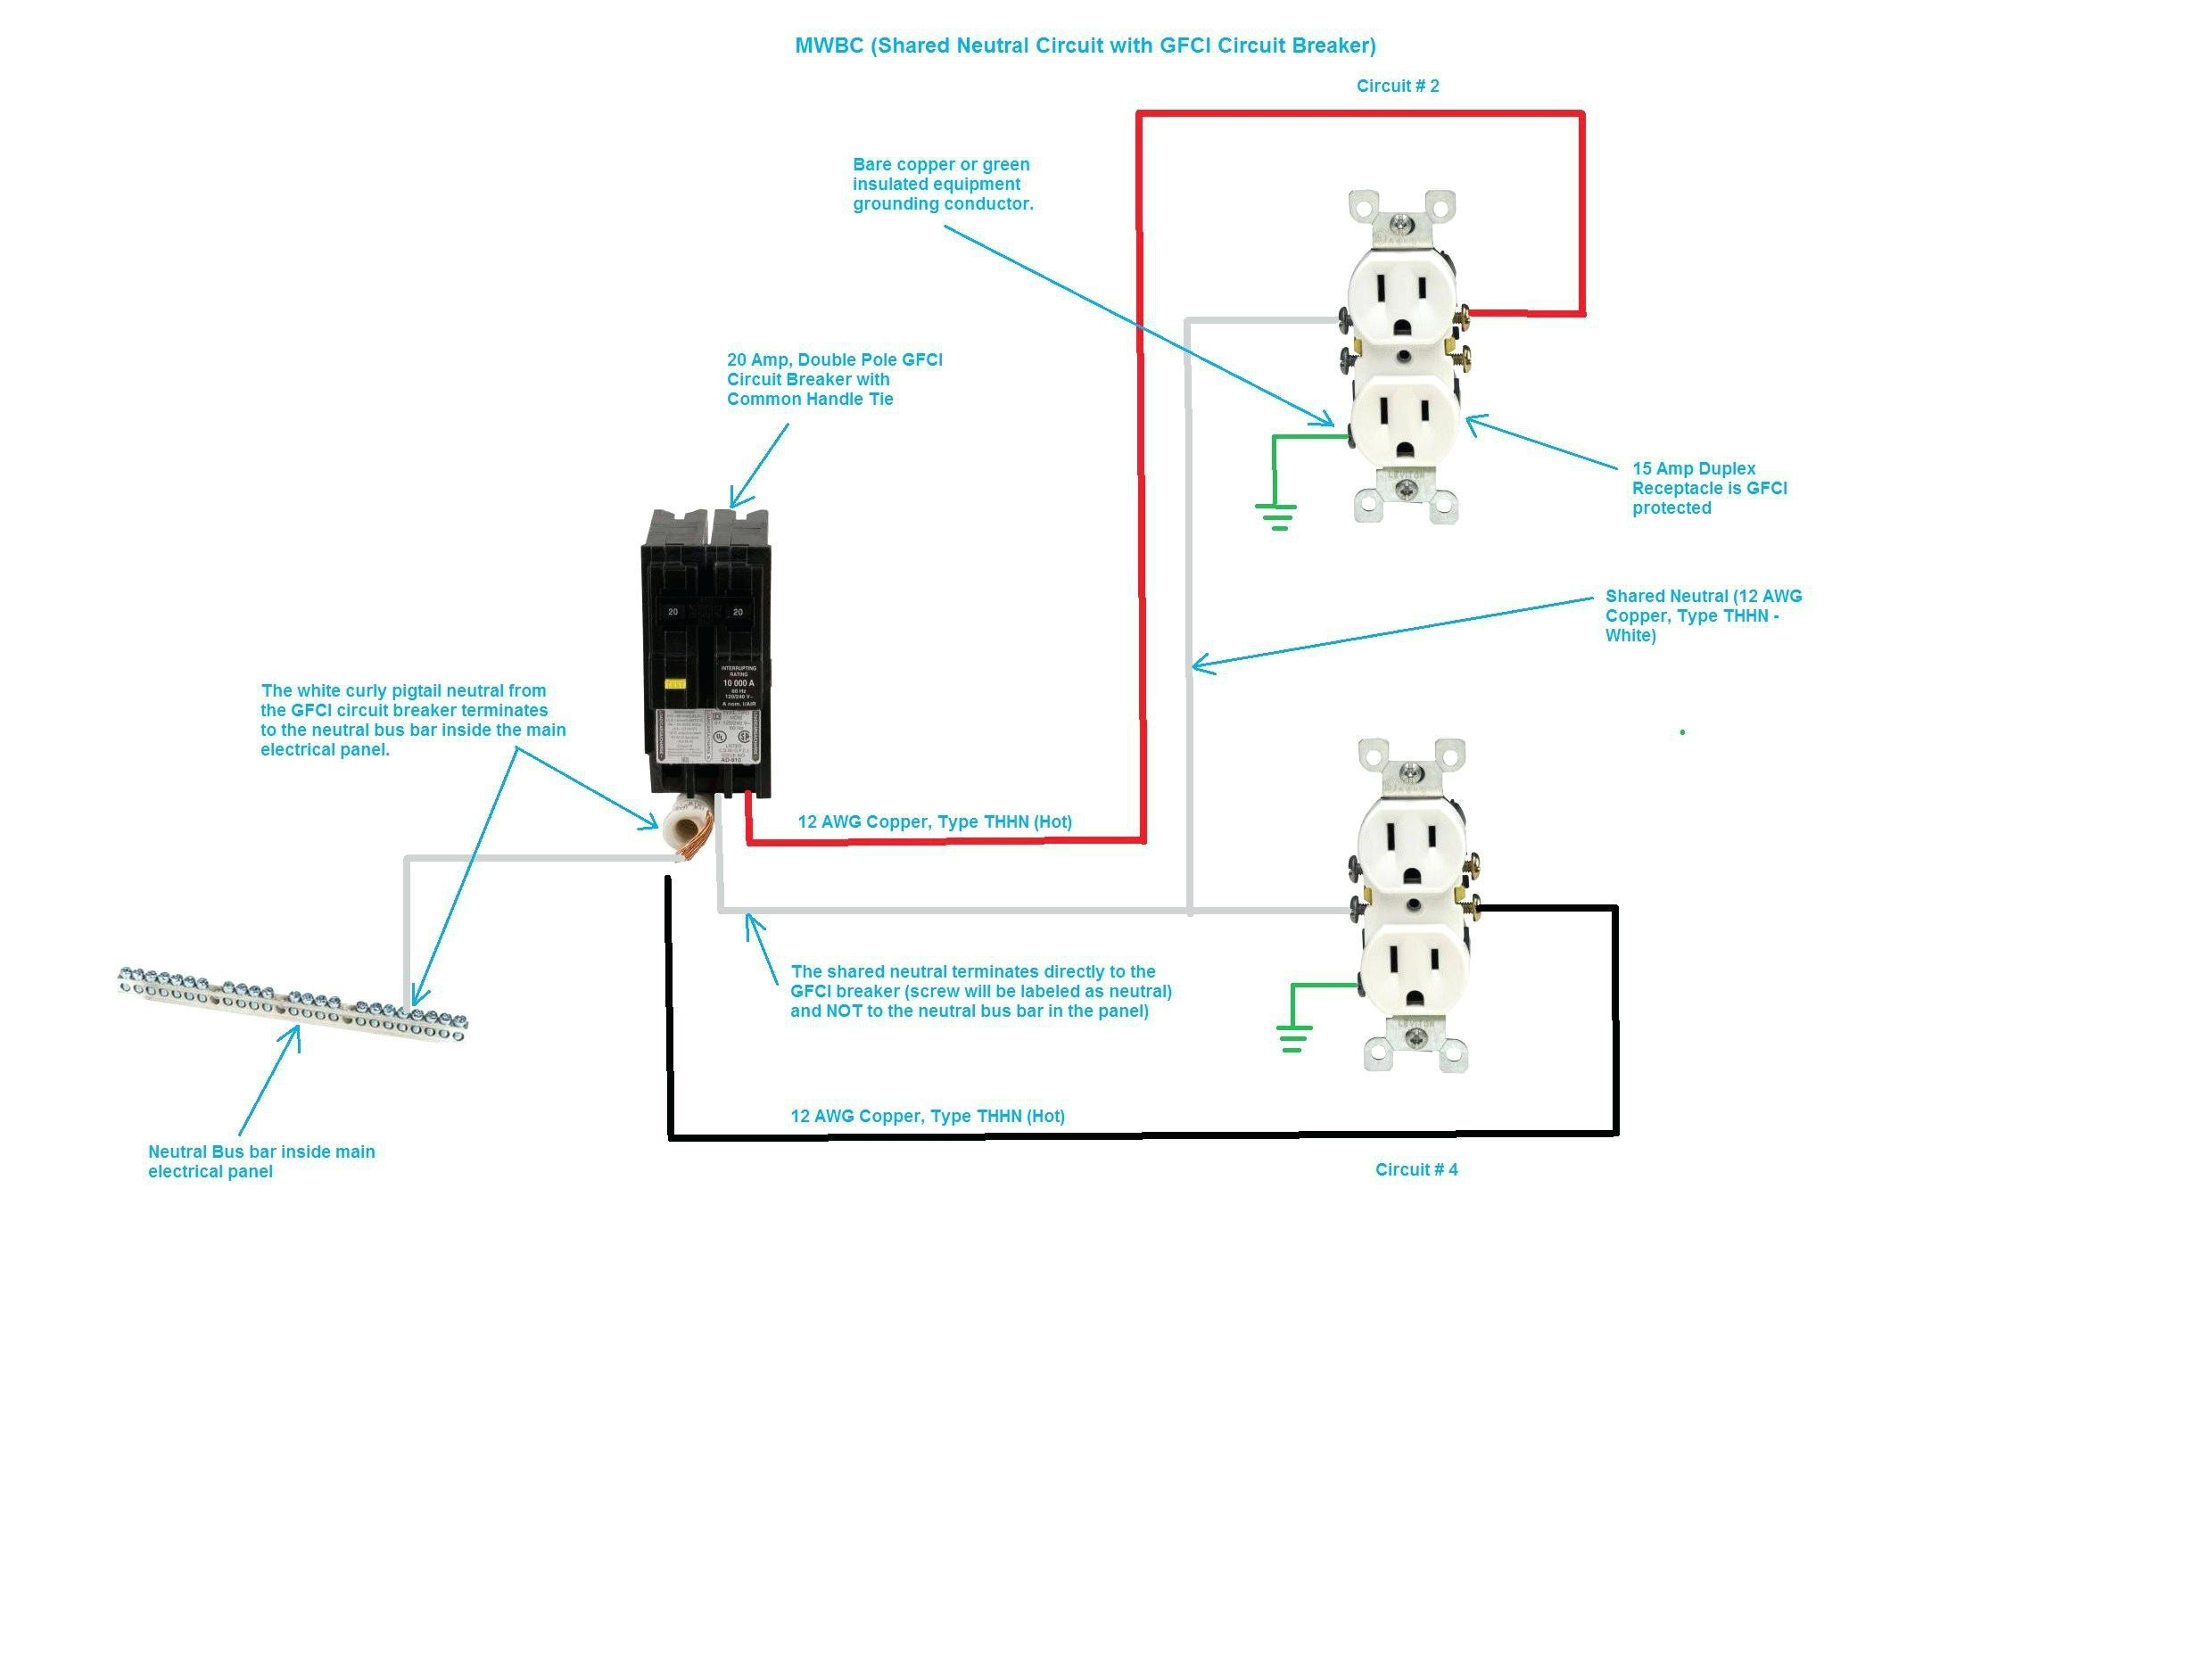 double pole circuit breaker wiring diagram | free wiring ... 480 volt circuit breaker wiring diagram 2 pole circuit breaker wiring diagram